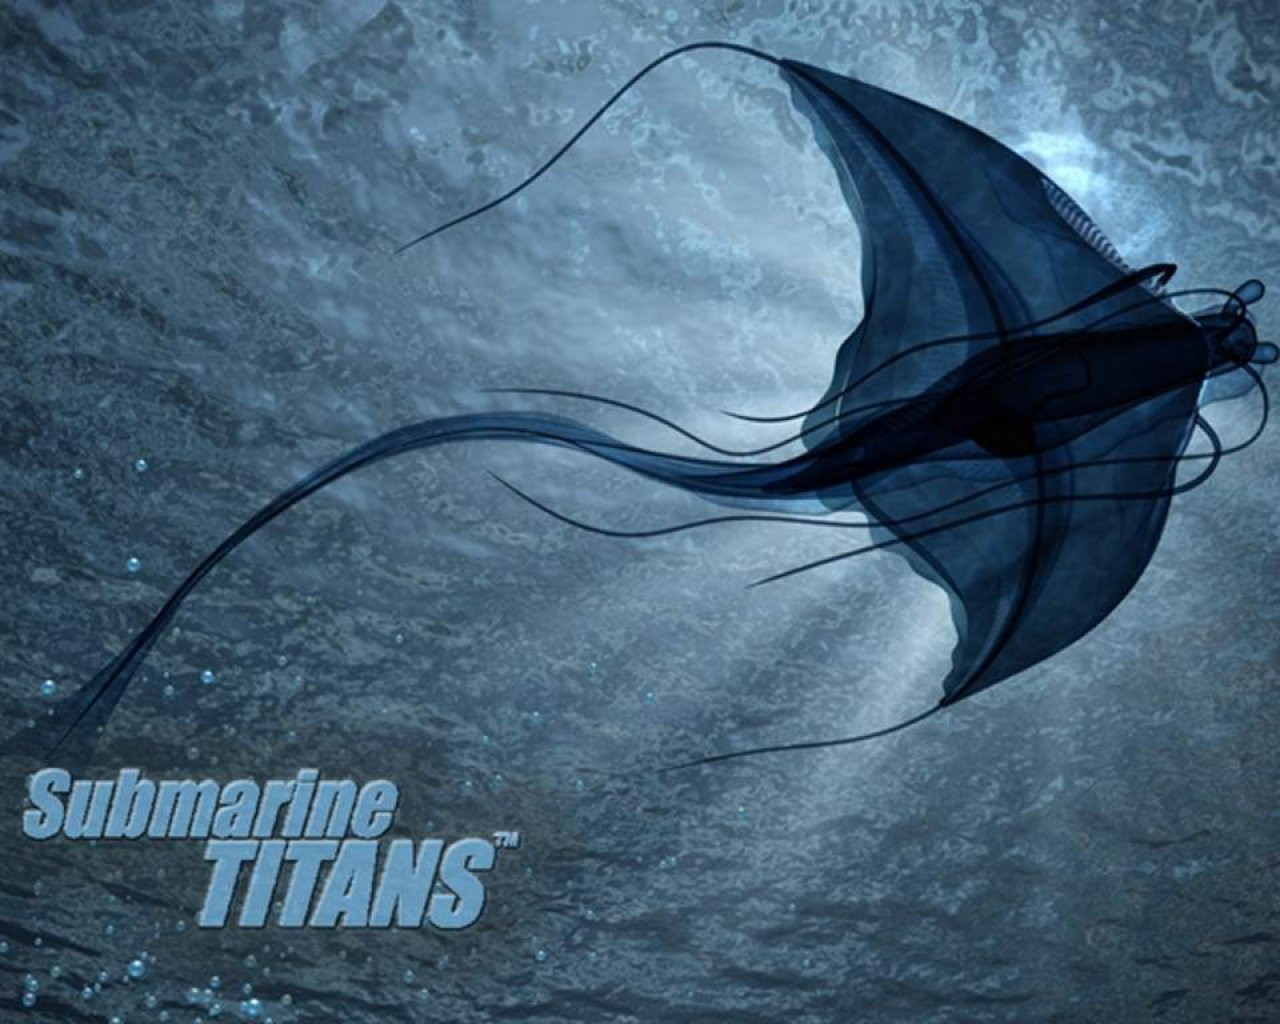 Submarine Titans Wallpapers - Download Submarine Titans Wallpapers